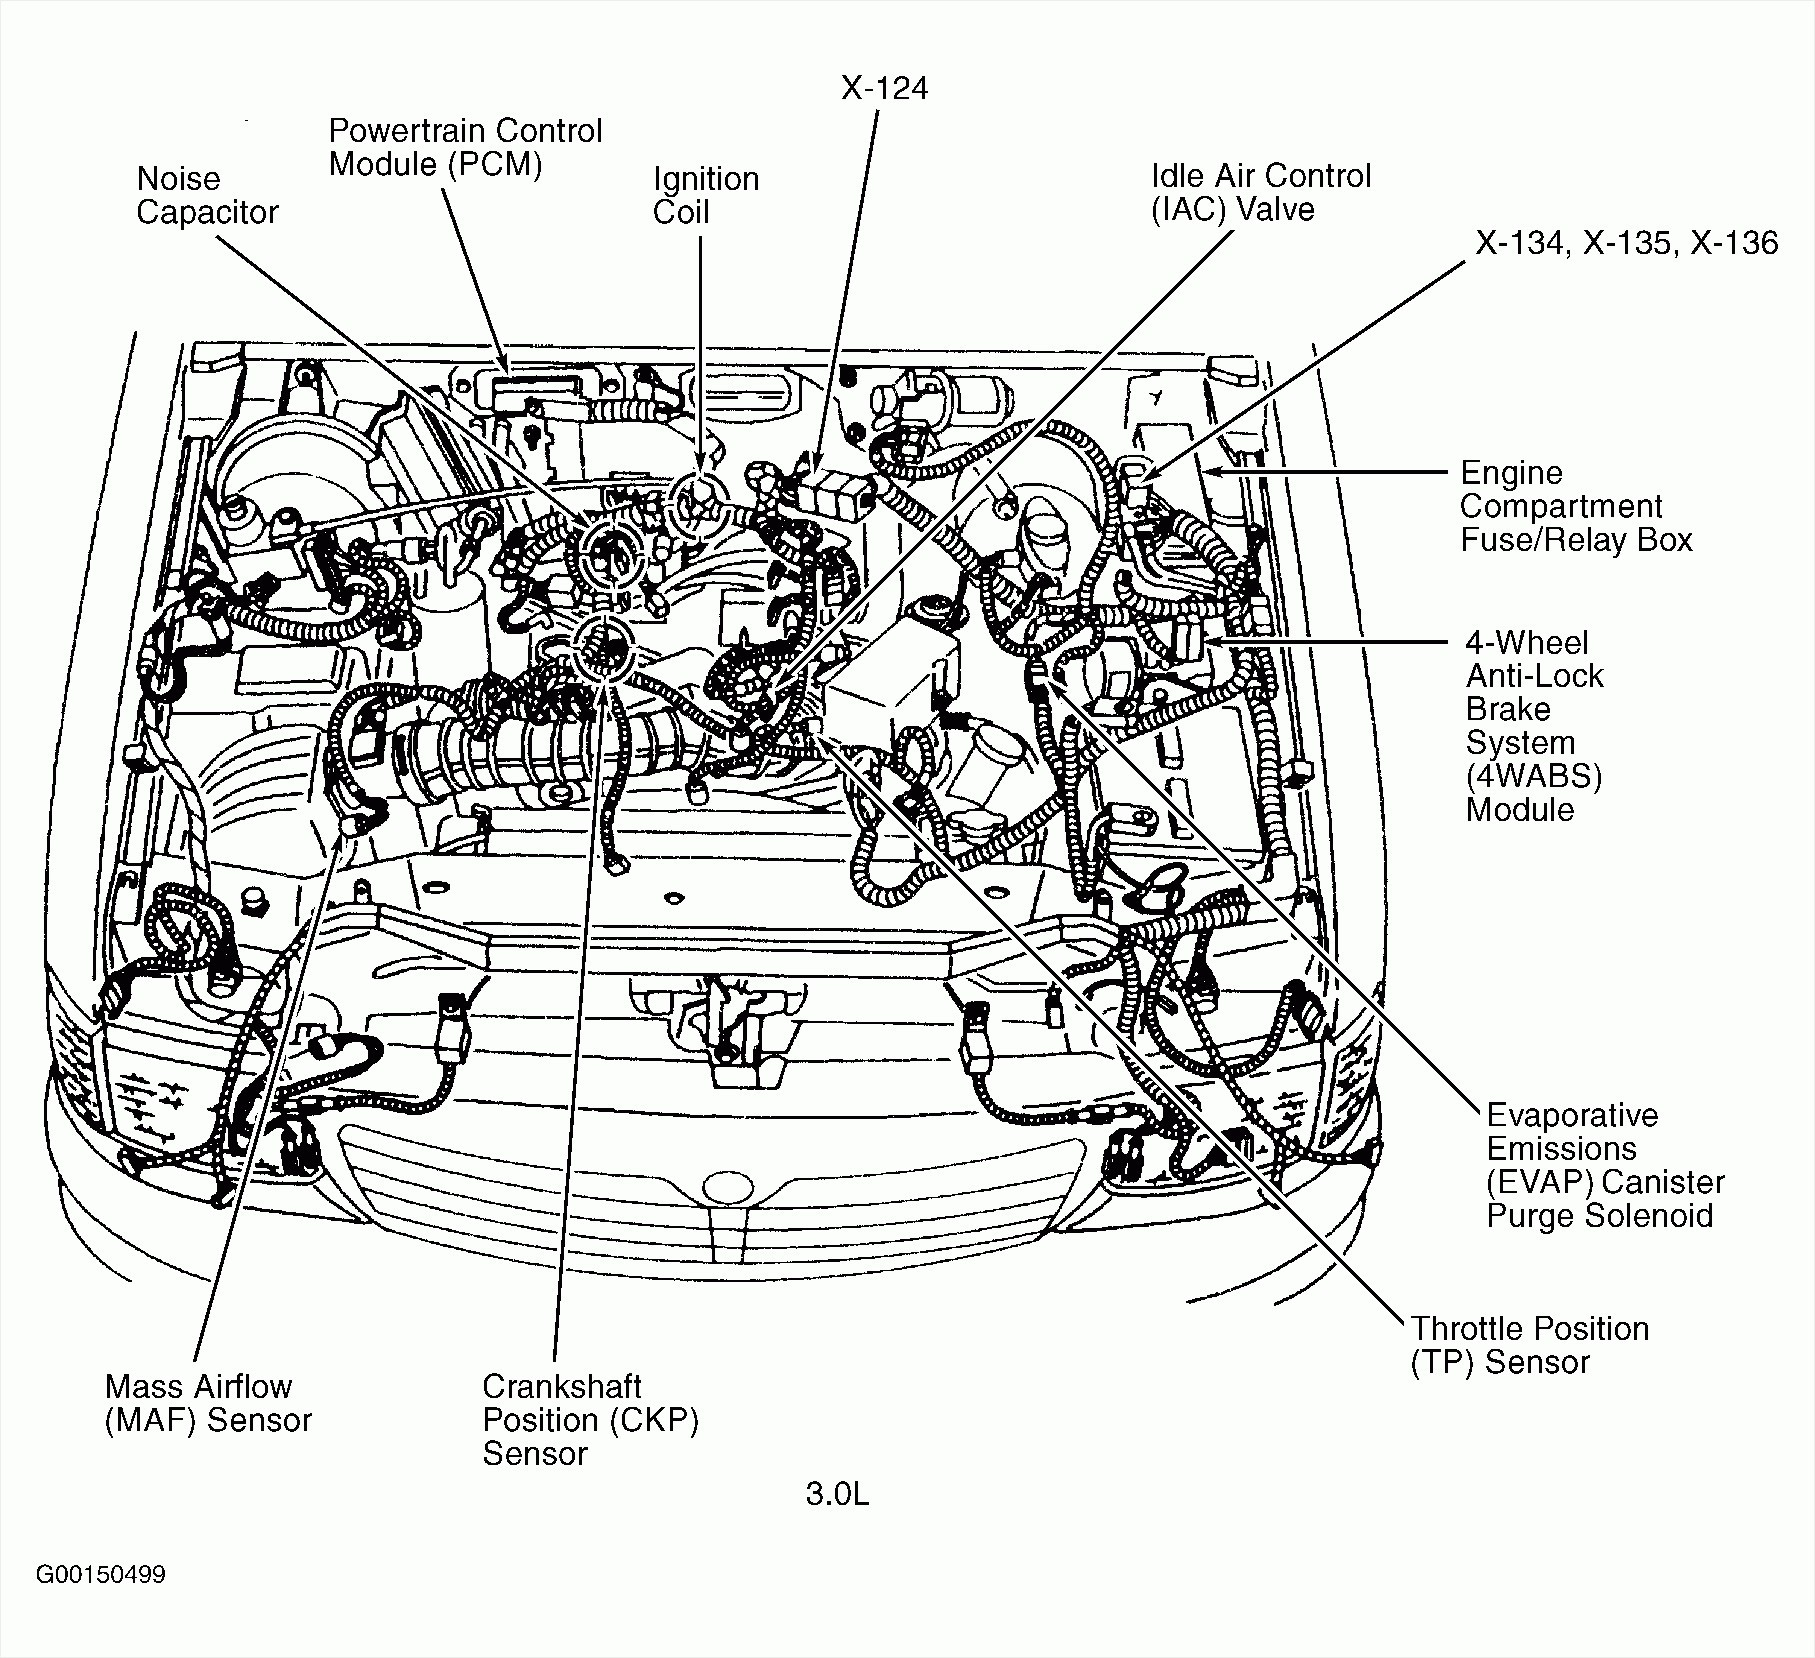 1997 mazda mpv engine diagram reveolution of wiring diagram u2022 rh  jivehype co 2003 mazda mpv radio wiring diagram 2003 mazda protege stereo  wiring ...